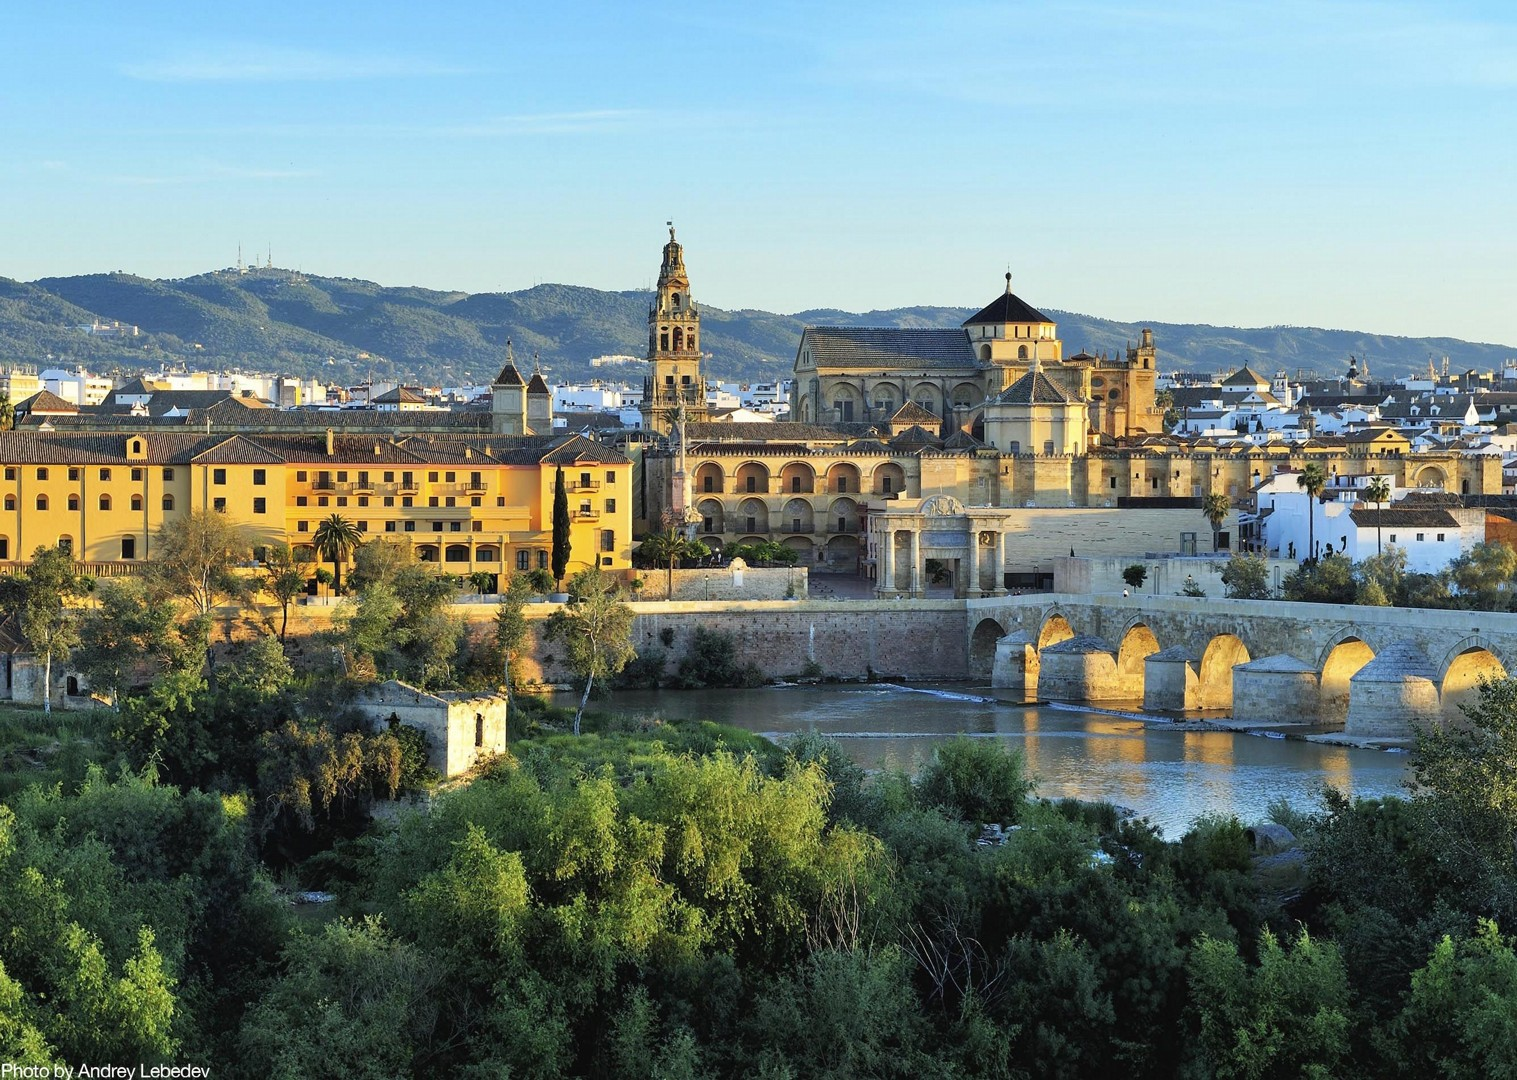 cordoba-cycling-holiday-in-spain-granada-to-seville-leisure-cycling.jpg - Southern Spain - Granada to Seville - Self-Guided Leisure Cycling Holiday - Leisure Cycling